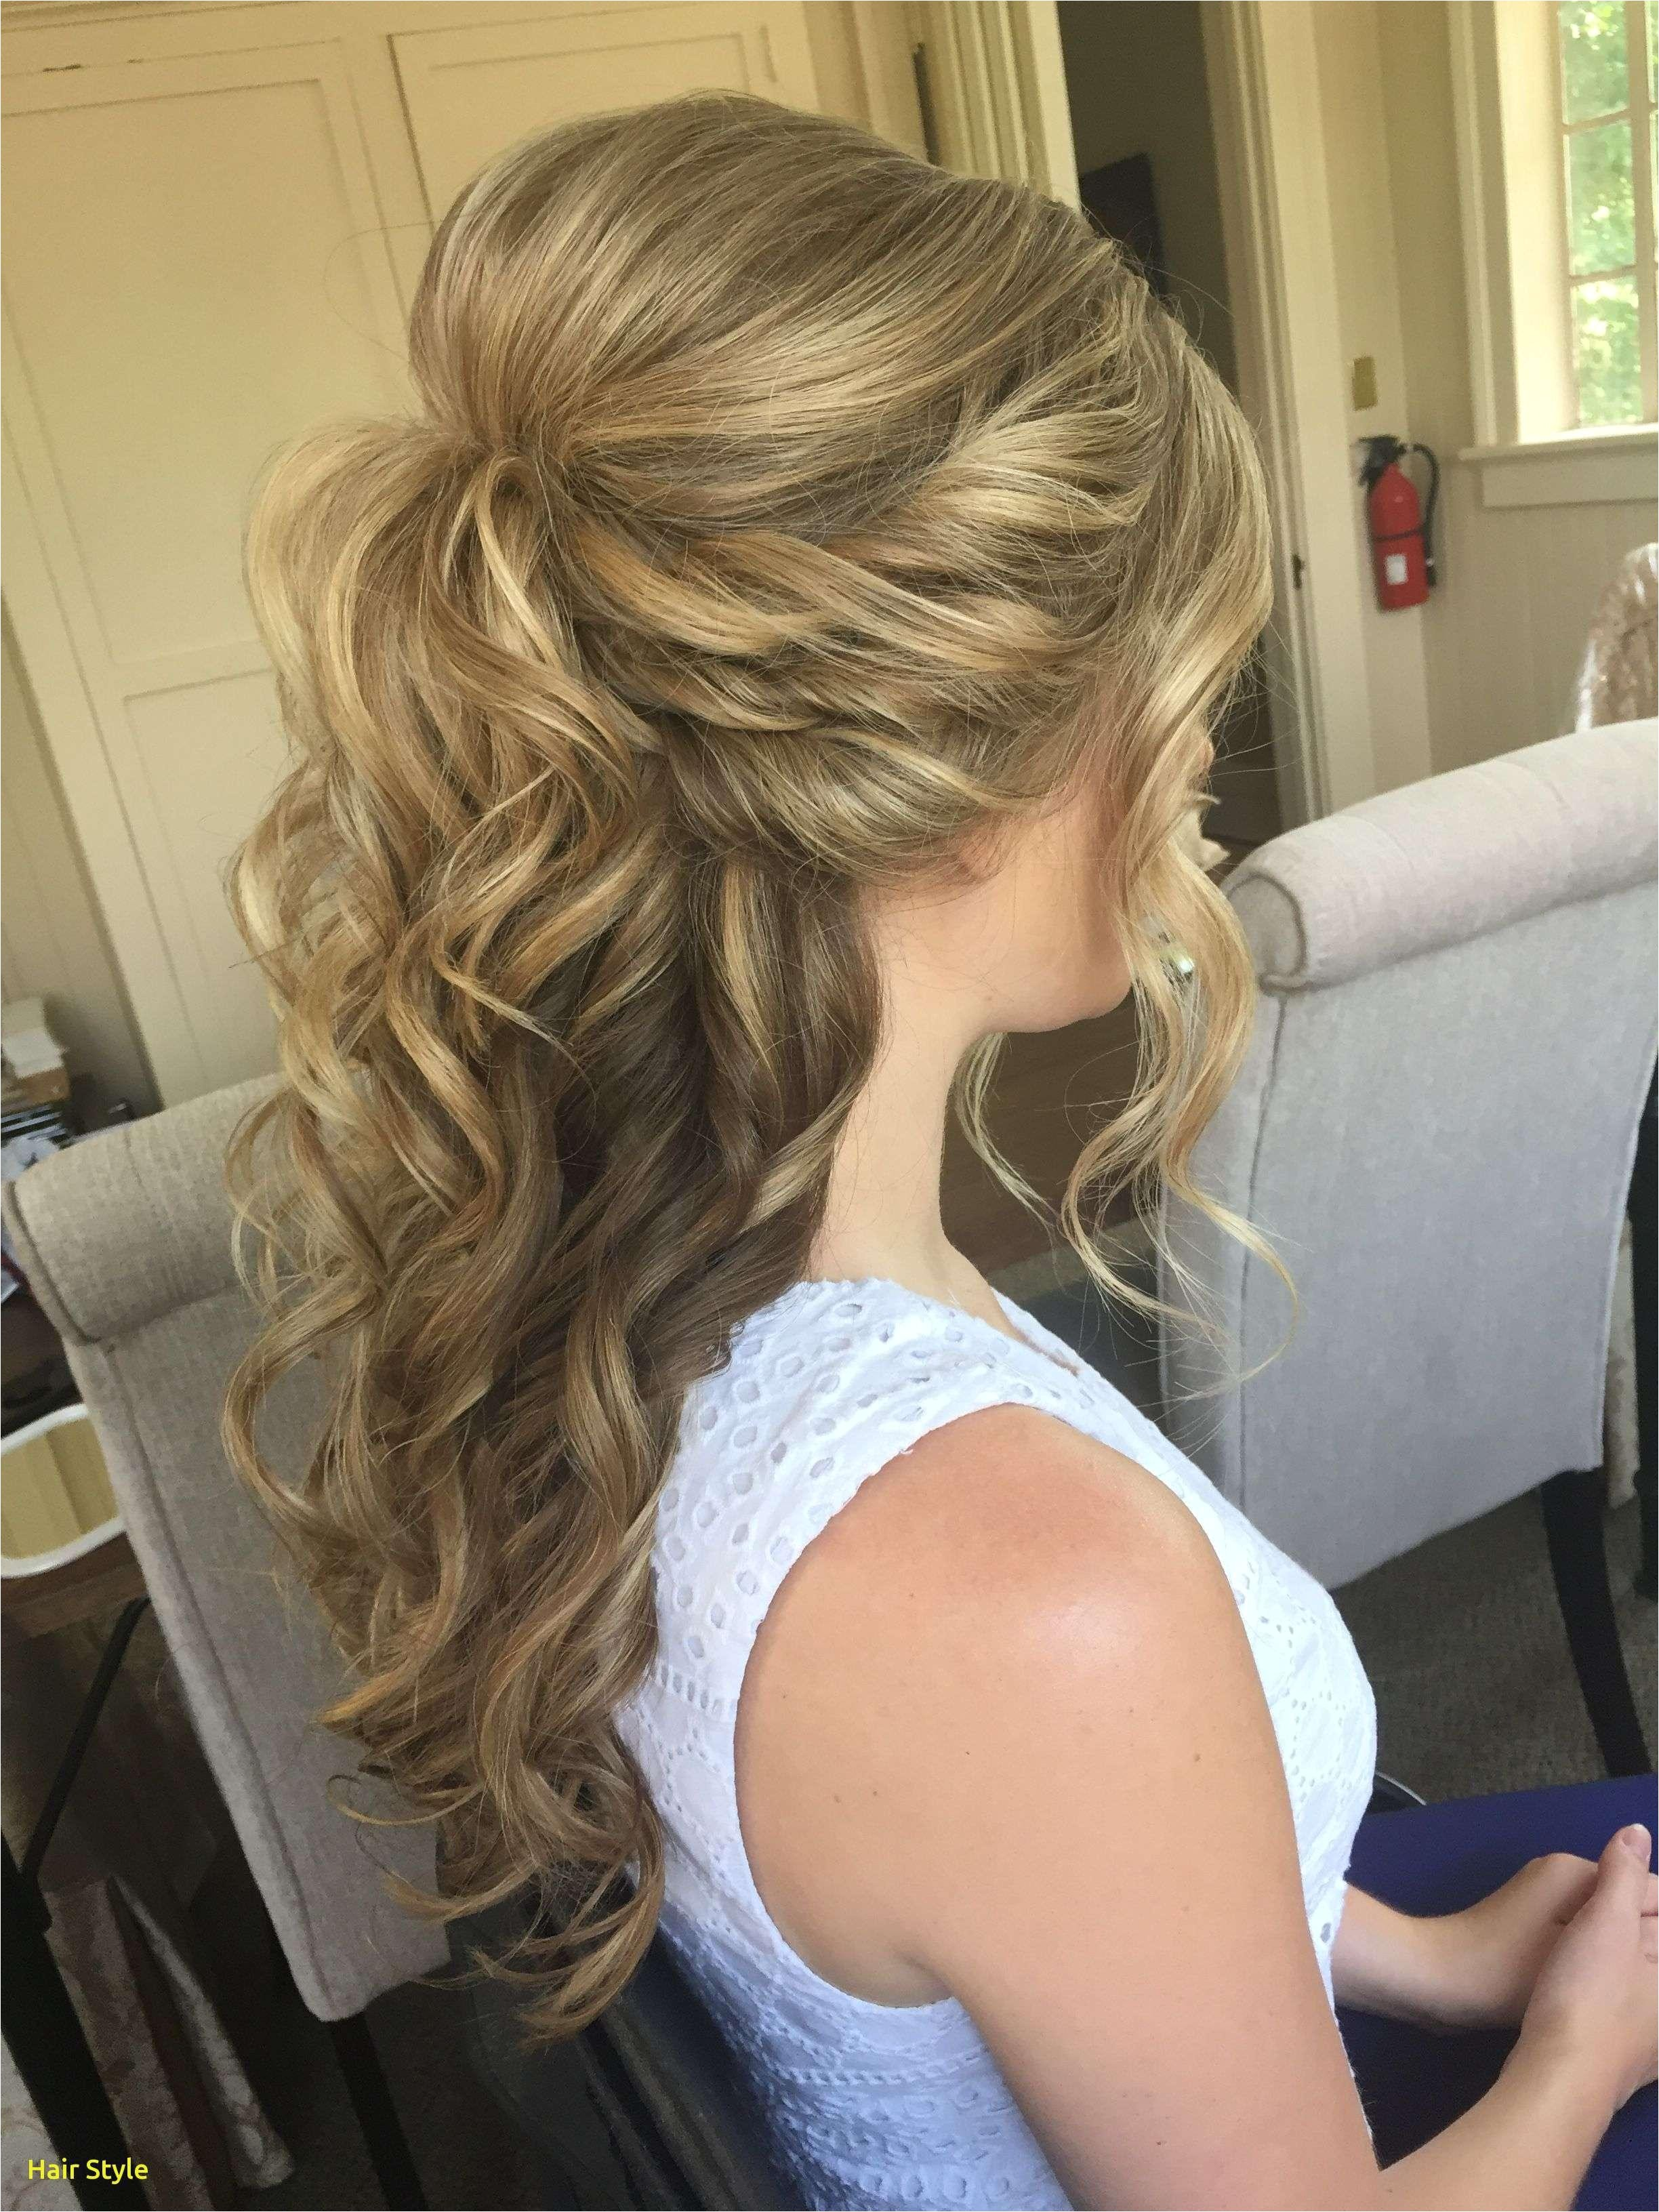 beautiful wedding hairstyles for medium hair pinterest ideas of prom hair tumblr up of prom hair tumblr up